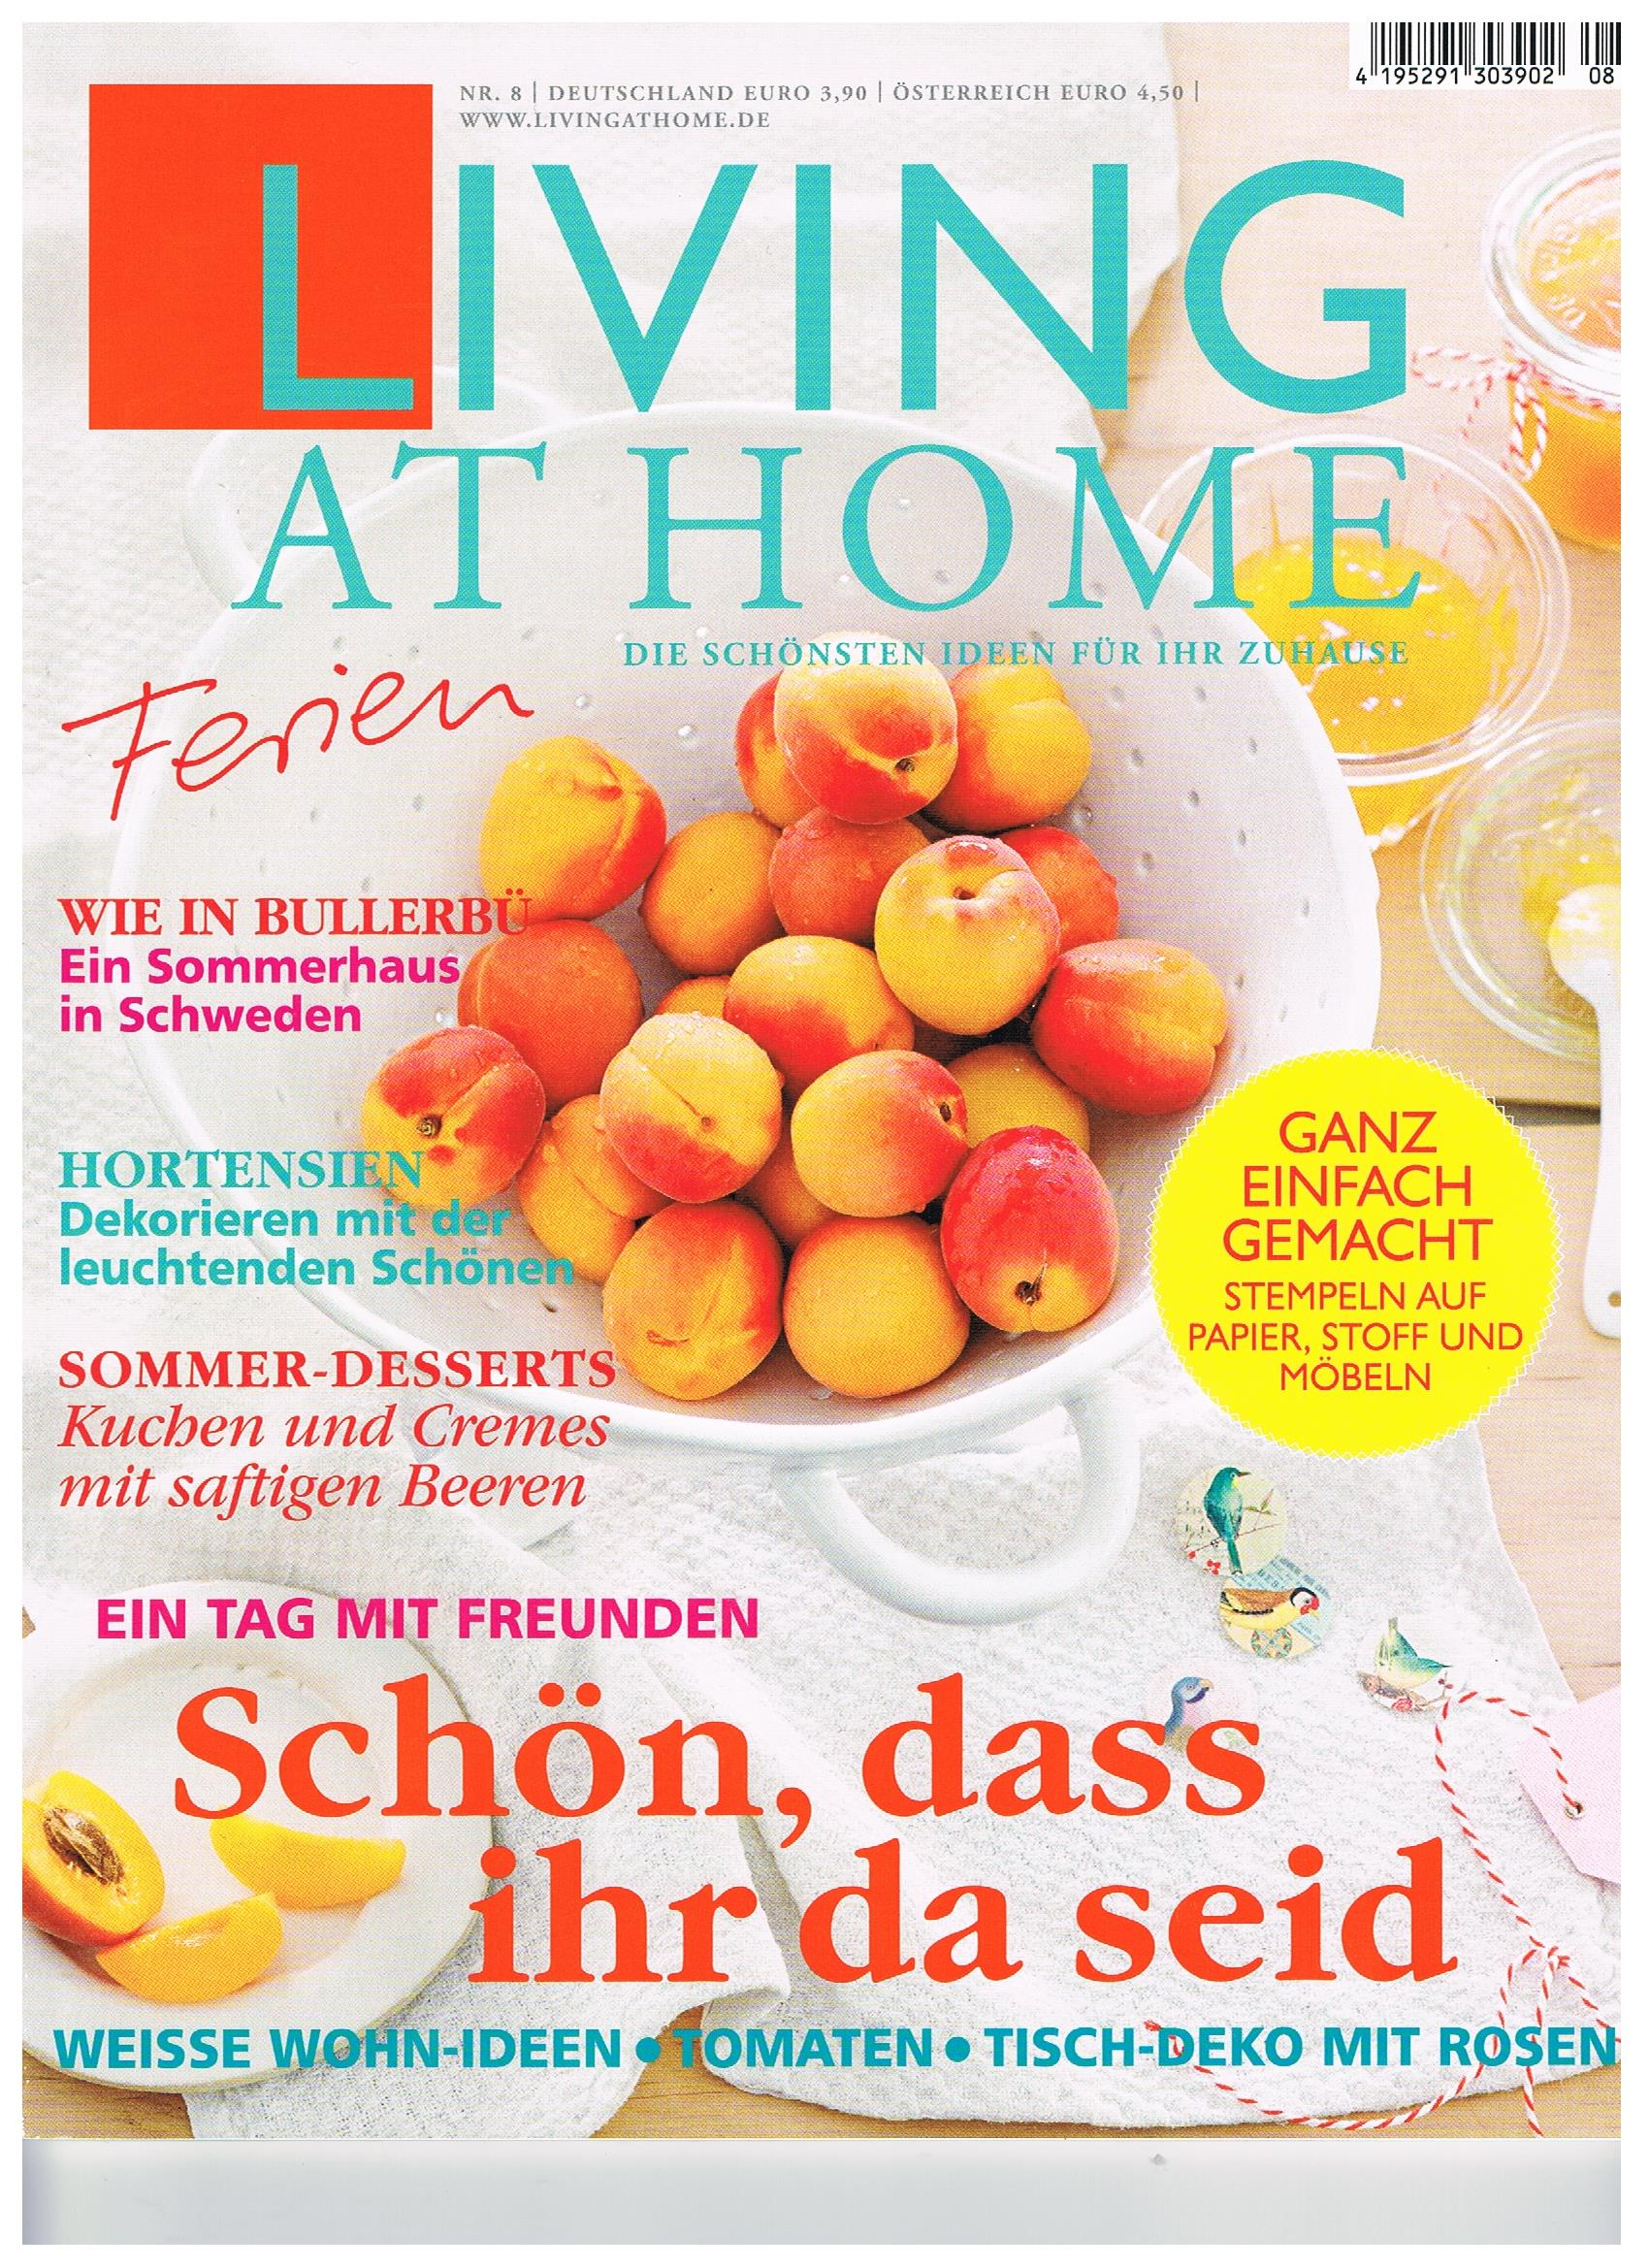 Petit Pont bei Living at home, Copyright Living at home